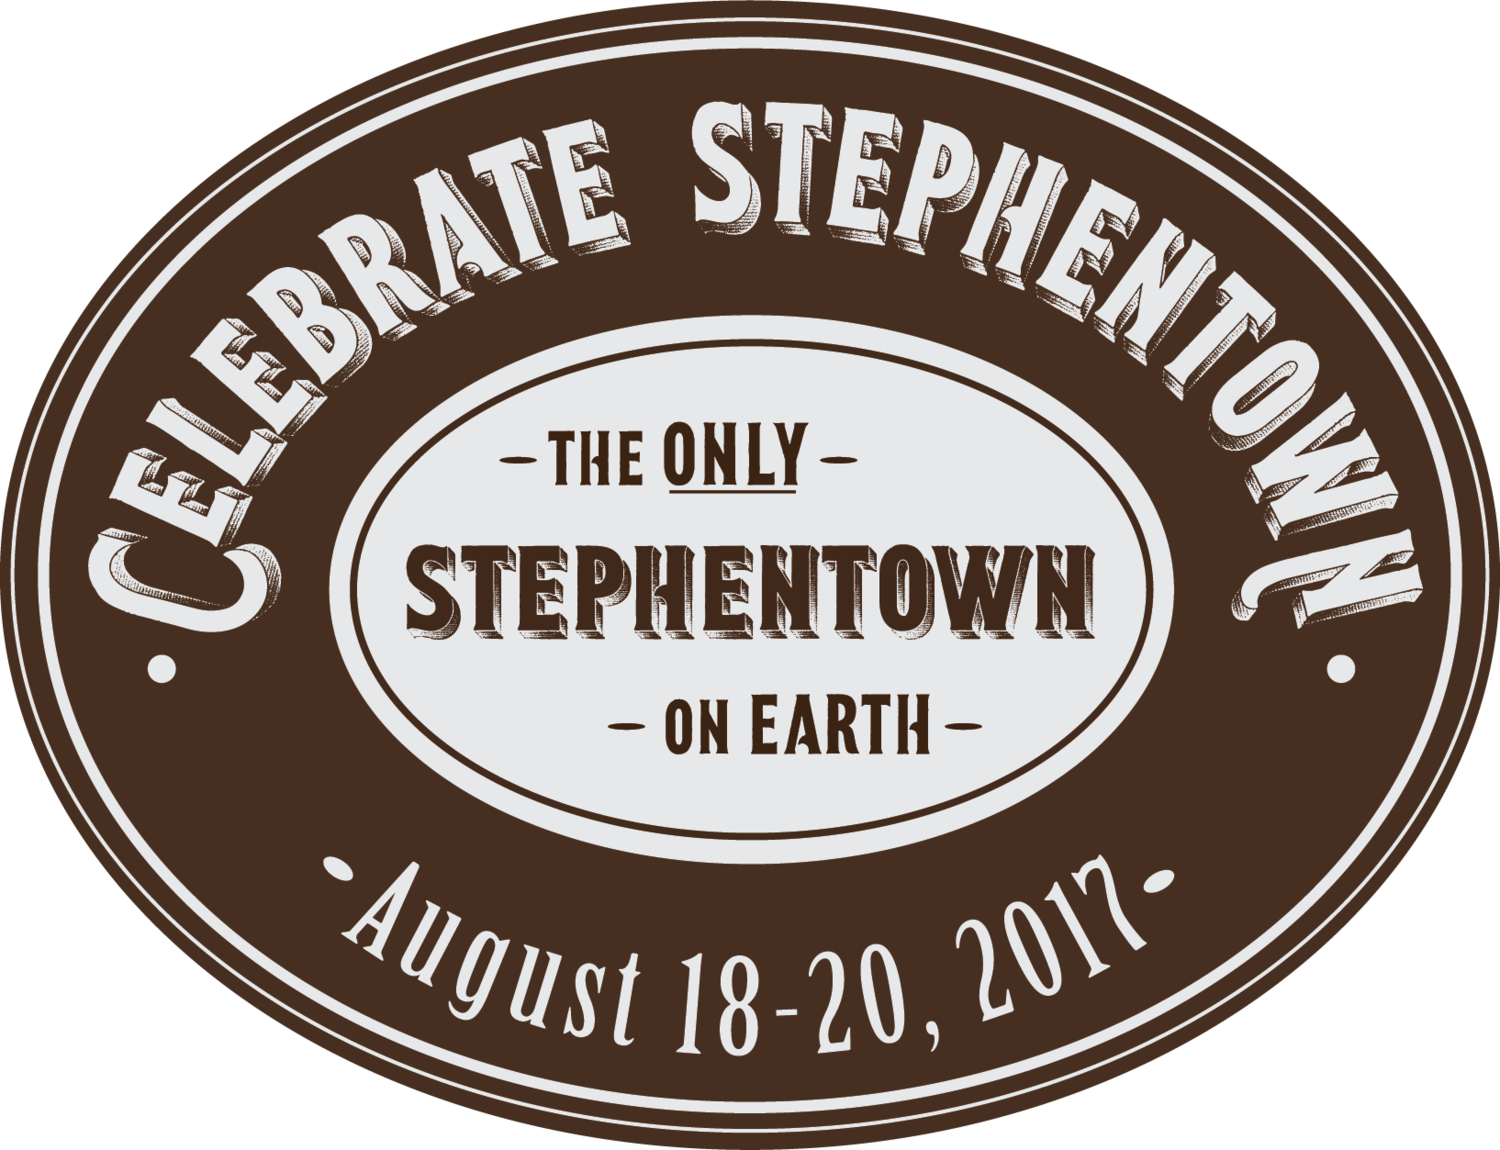 Celebrate Stephentown